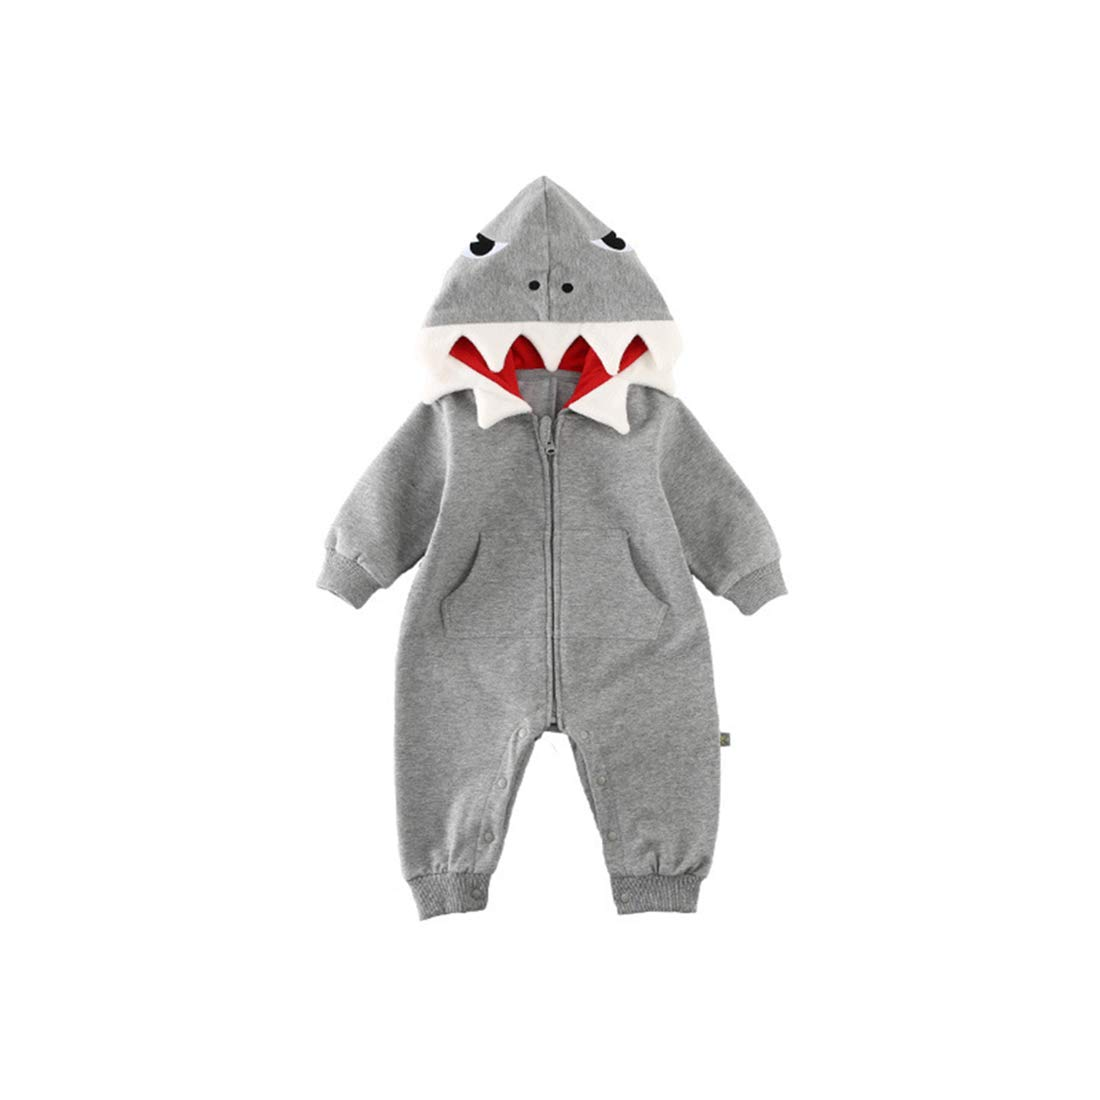 ALLAIBB Baby Shark Costumes Onesie Cotton 3D Cartoon Romper Cute Jumpsuit Hooded Outwear for Newborn Infant Kids Boys Girls  (12-18M, Gray) by ALLAIBB